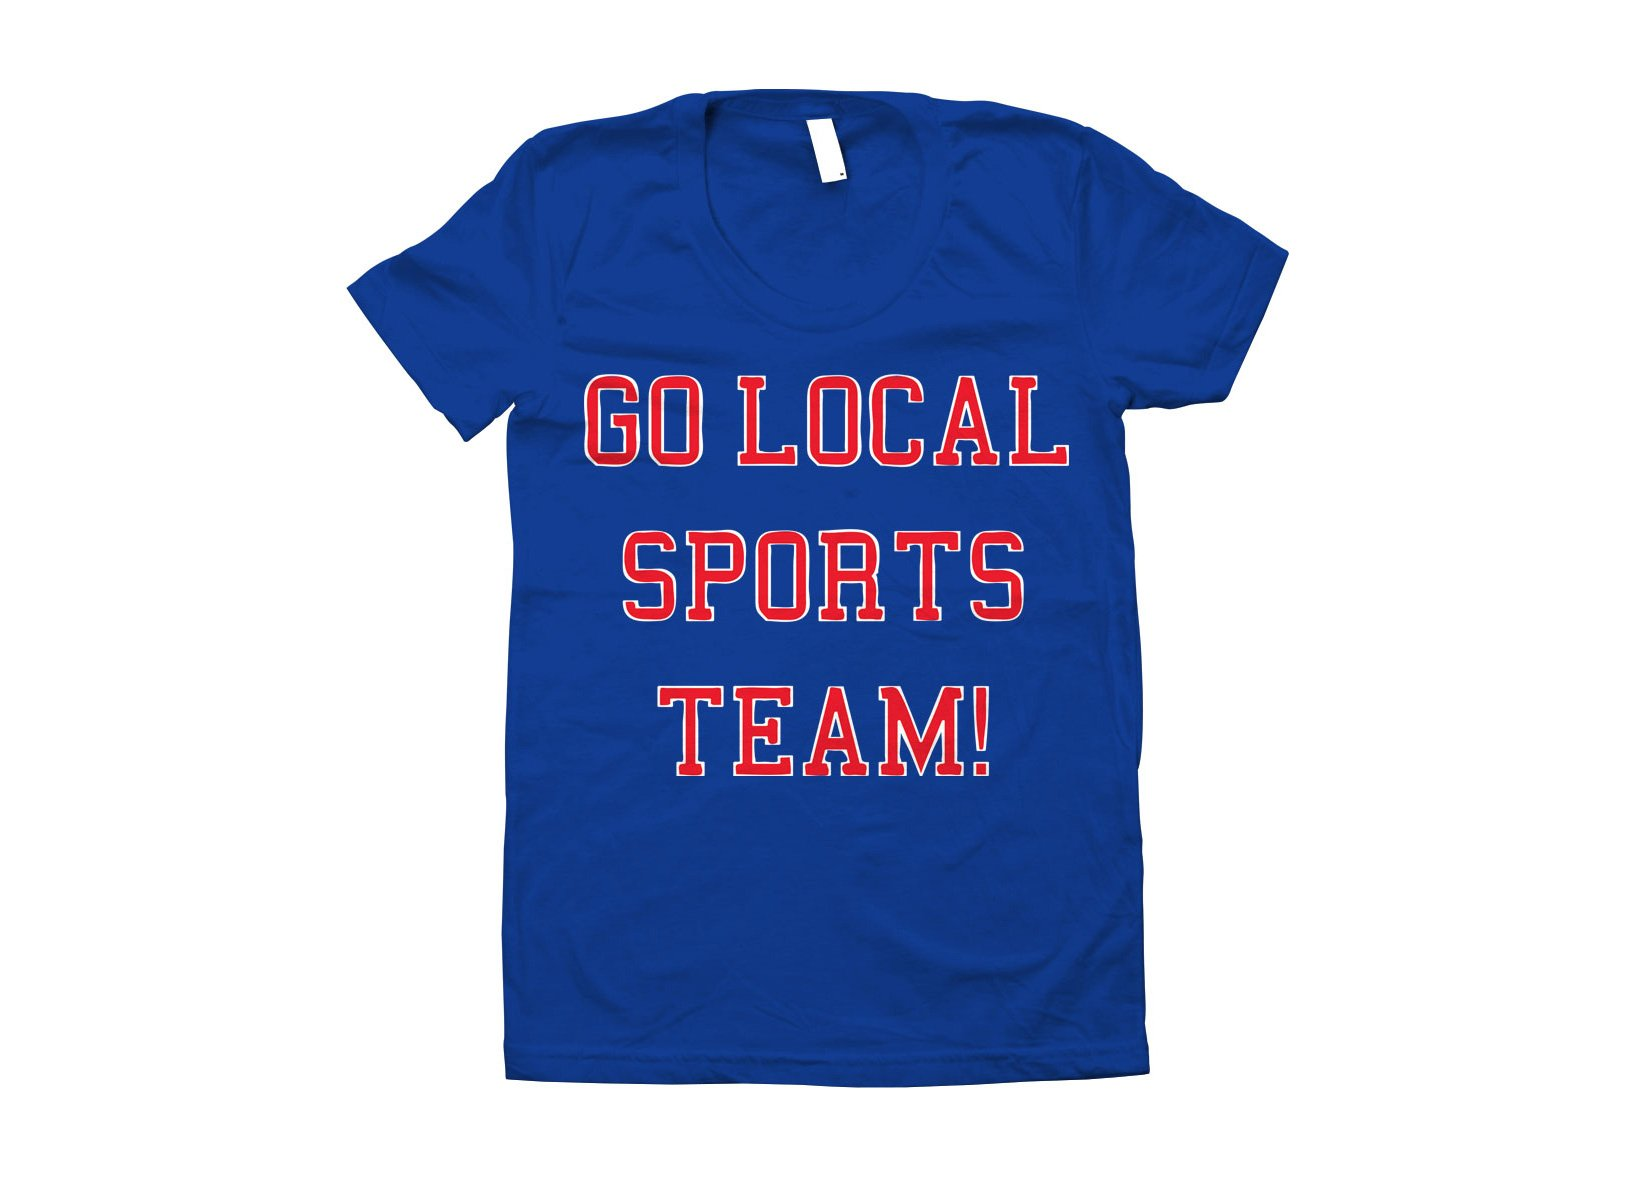 Go Local Sports Team! on Juniors T-Shirt